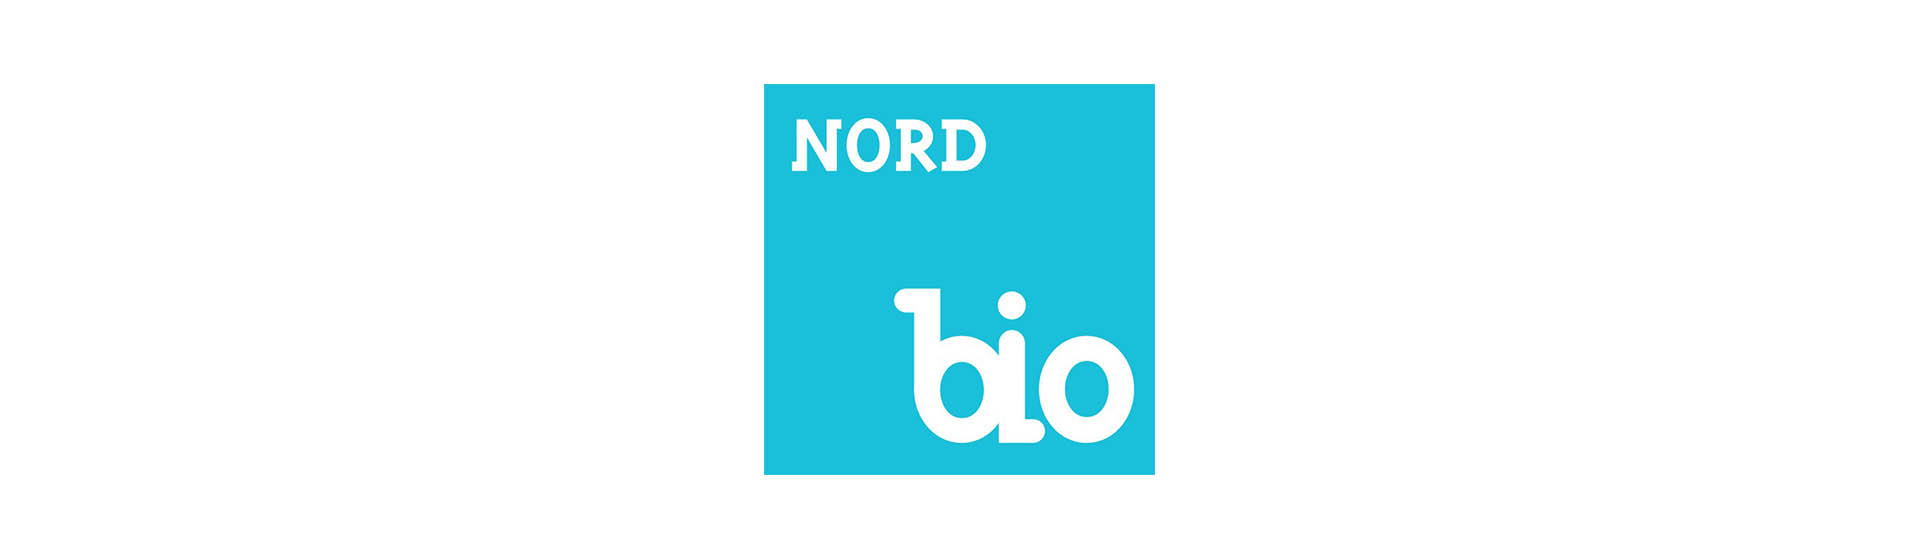 Logo BioNord Messe Hannover